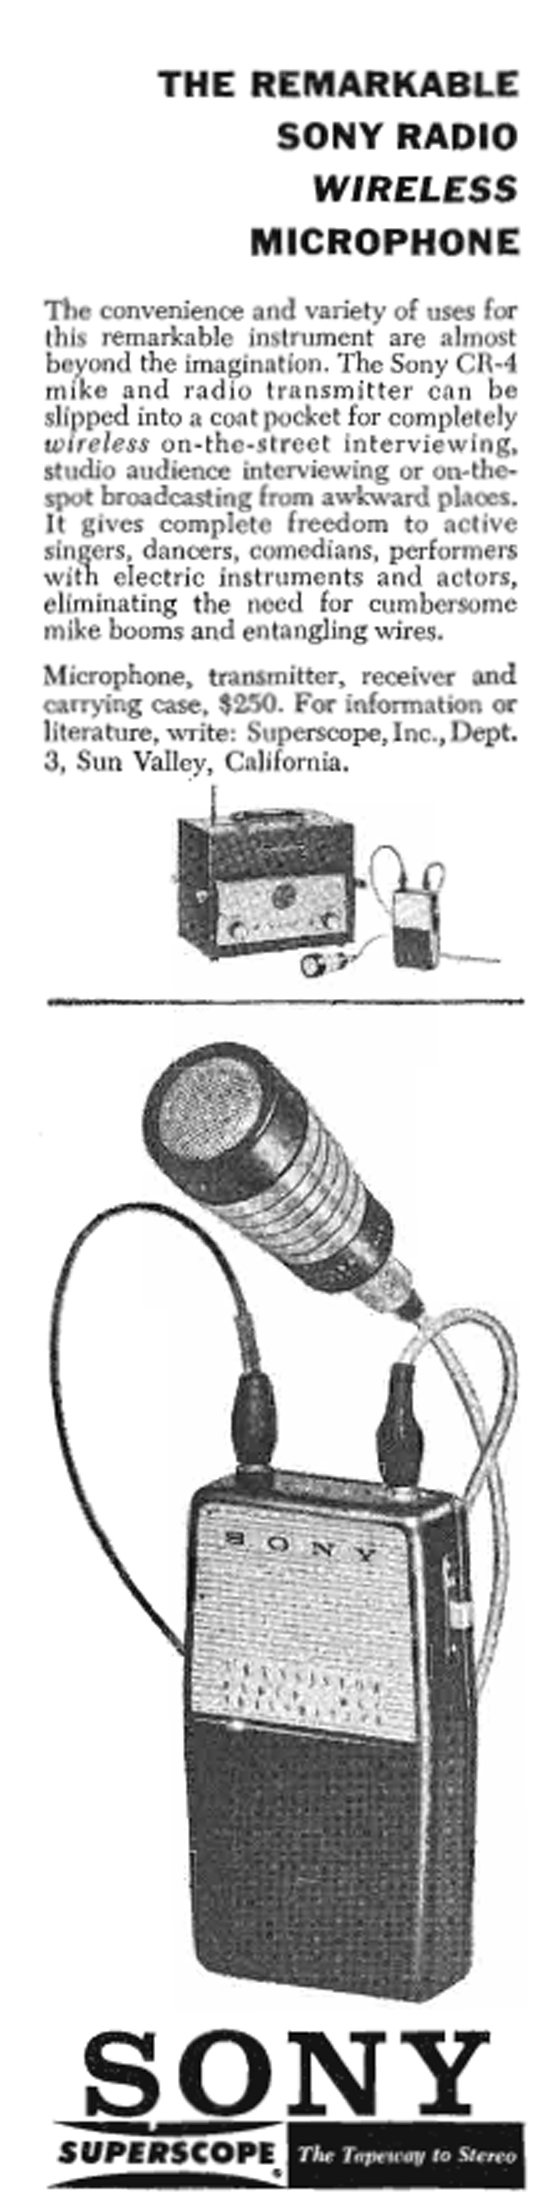 1960 ad for the Sony CR4 wireless microphone in Reel2ReelTexas.com's vintage recording collection